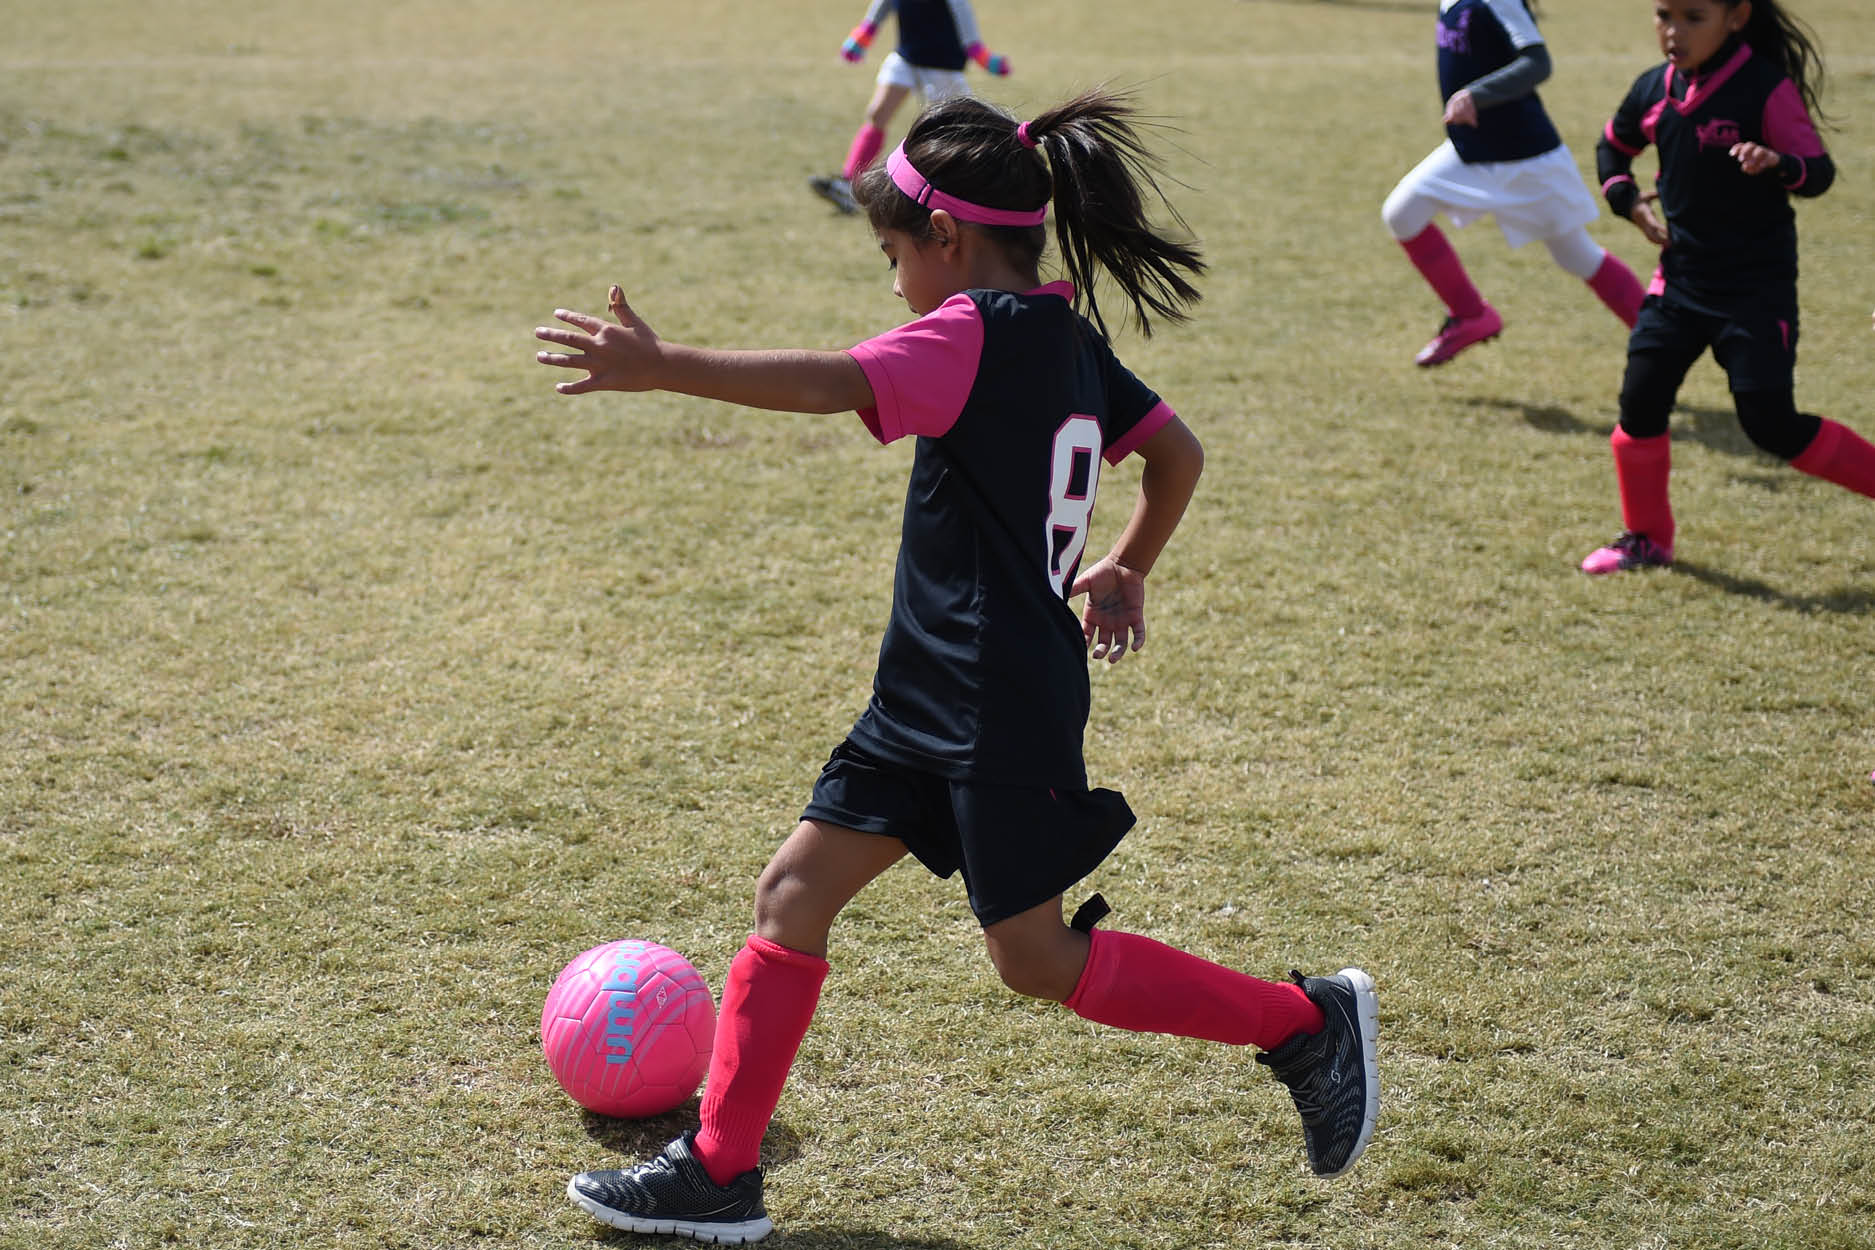 Female soccer playing in black and pink jersey kicking soccer ball